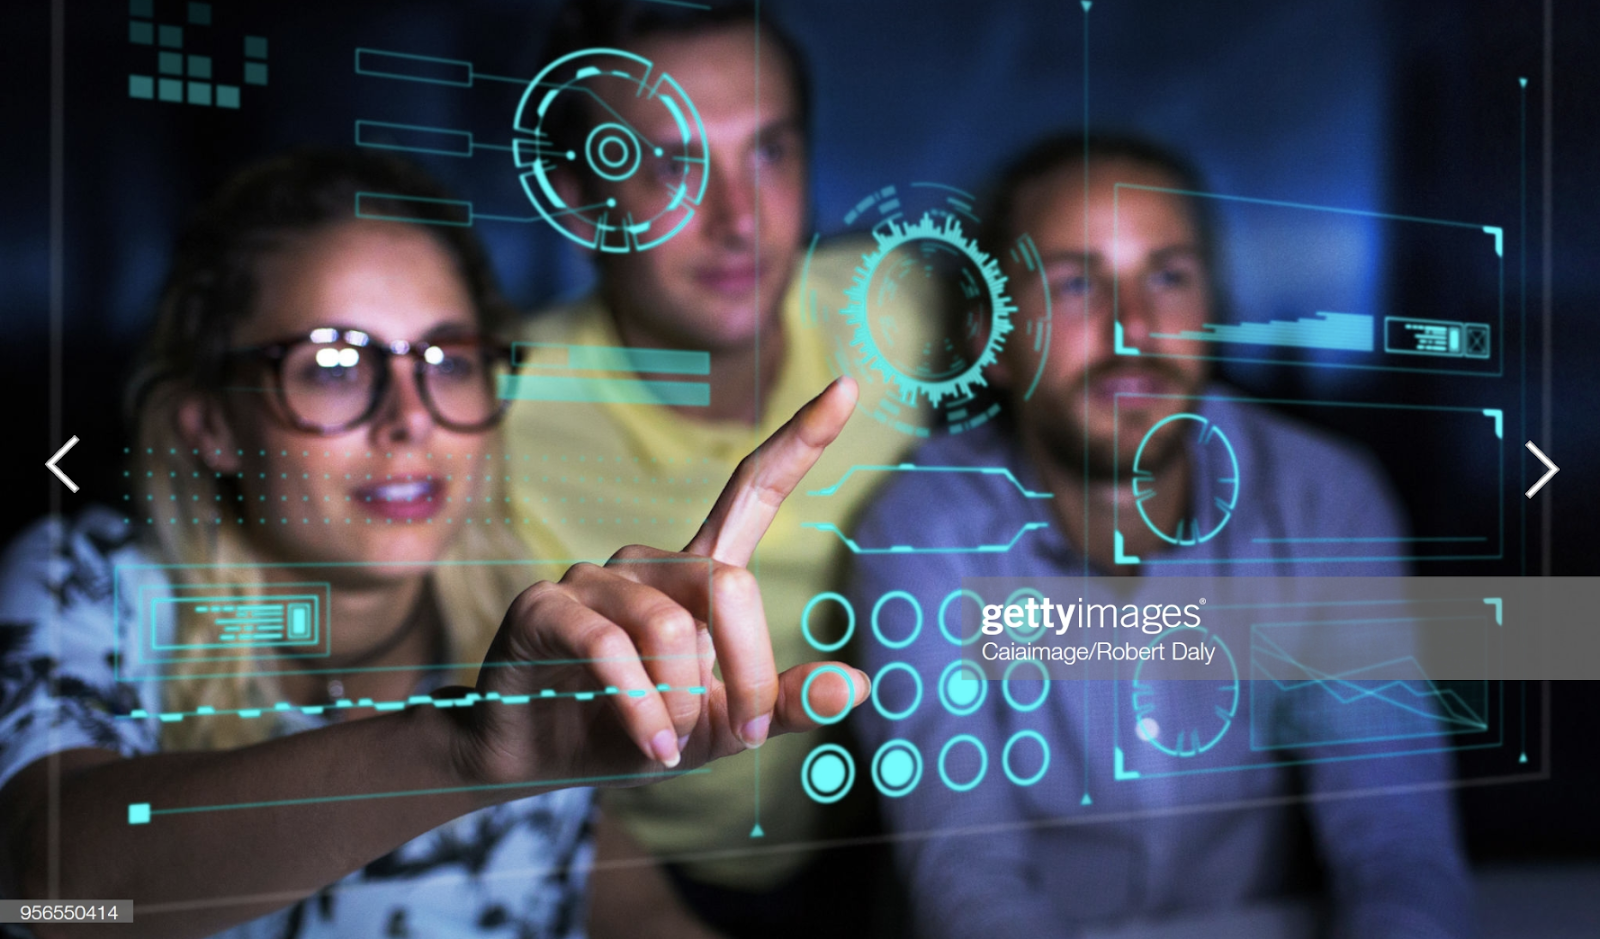 stock photo of people interacting with a digital screen